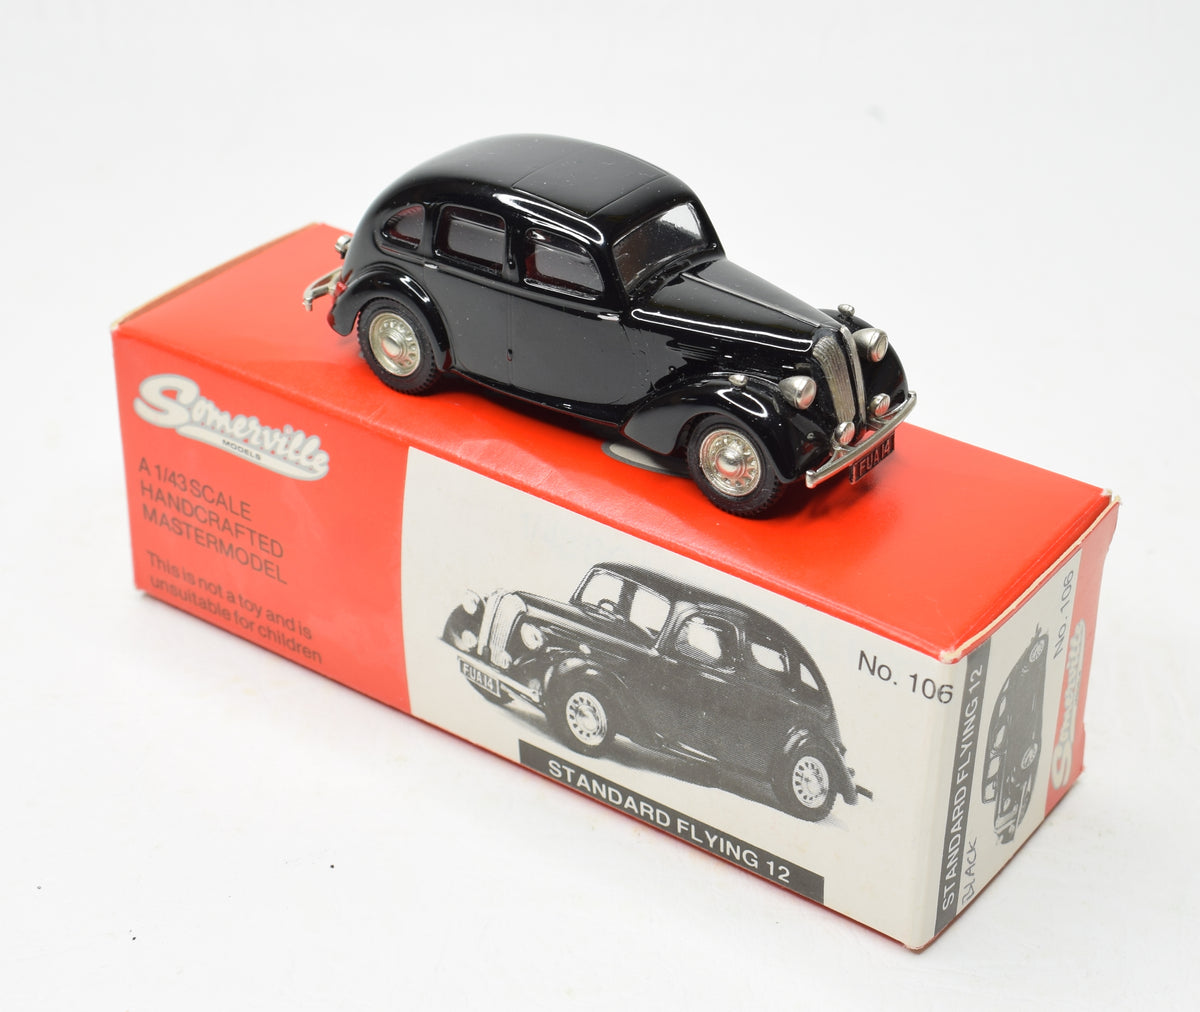 Sommerville 106 Standard Flying 12 Virtually Mint/Boxed The 'Carlton' Collection